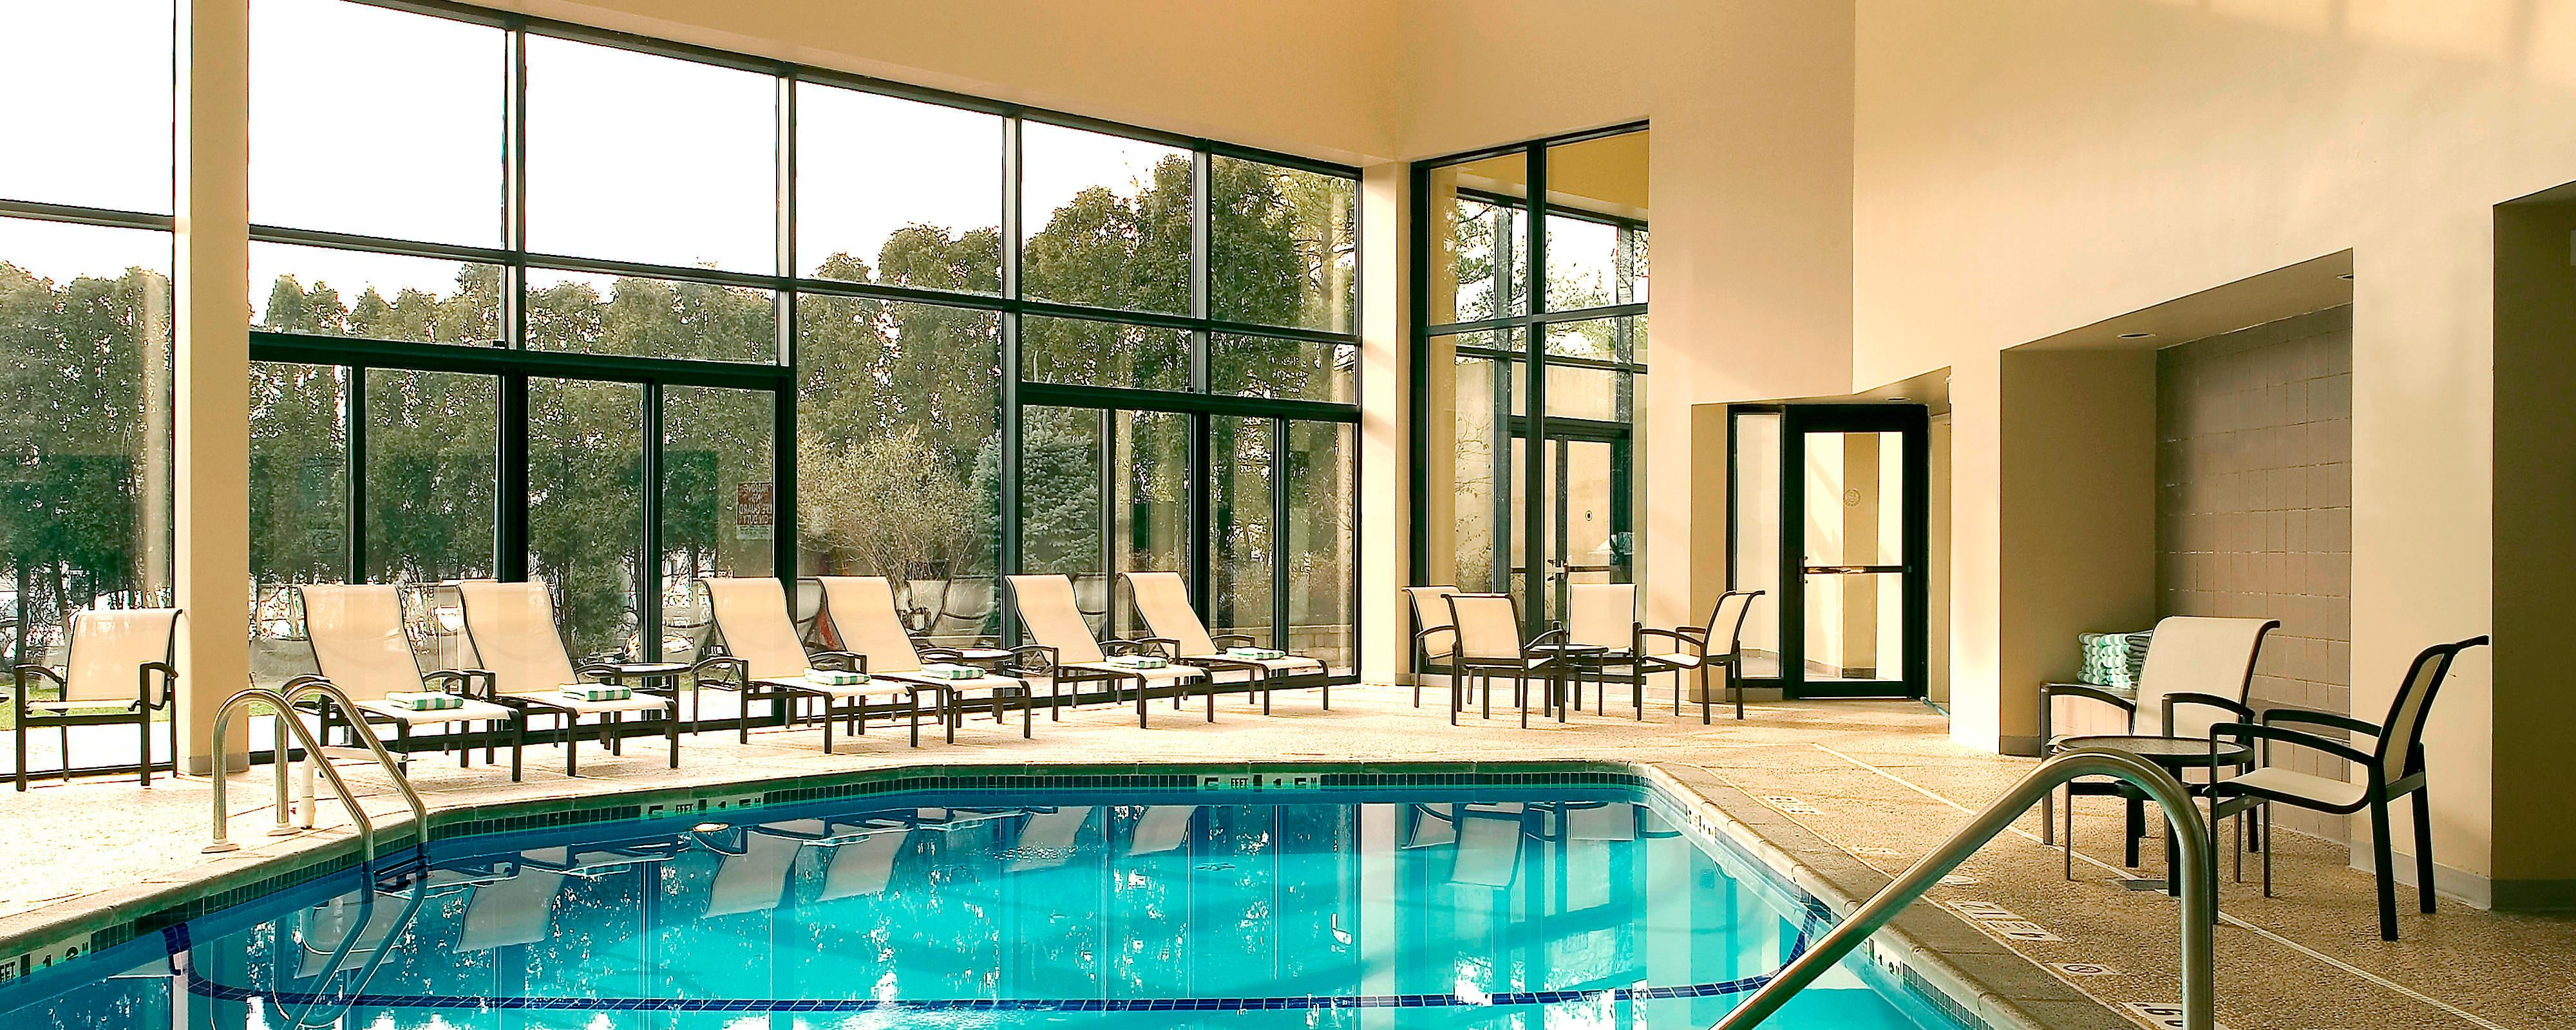 Hotels In Edison Nj With Indoor Pool And Gym Sheraton Edison